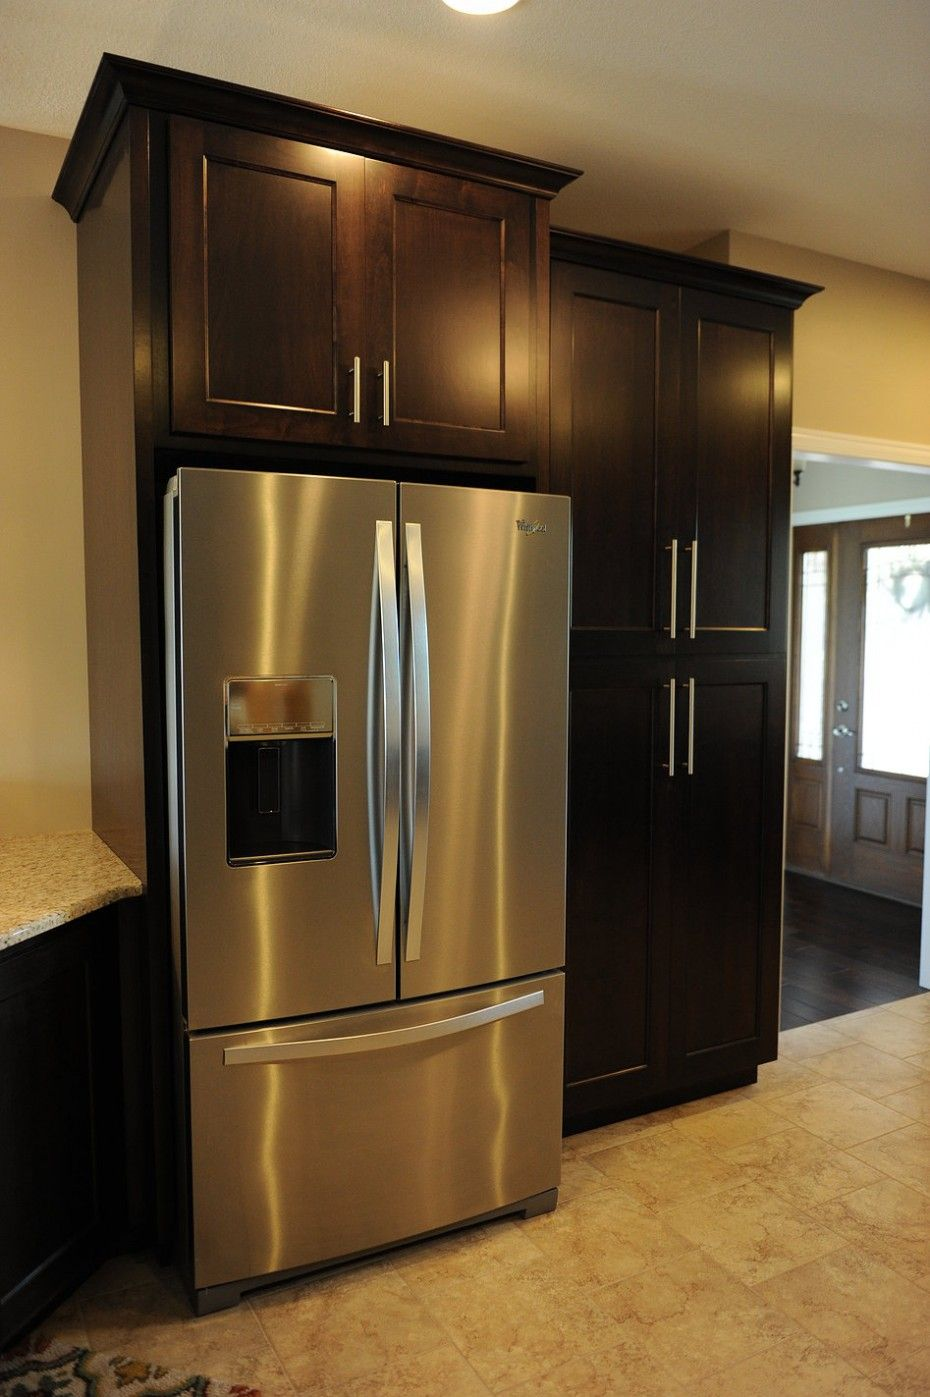 Black Polished Oak Wood Tall Free Standing Pantry Cabinet